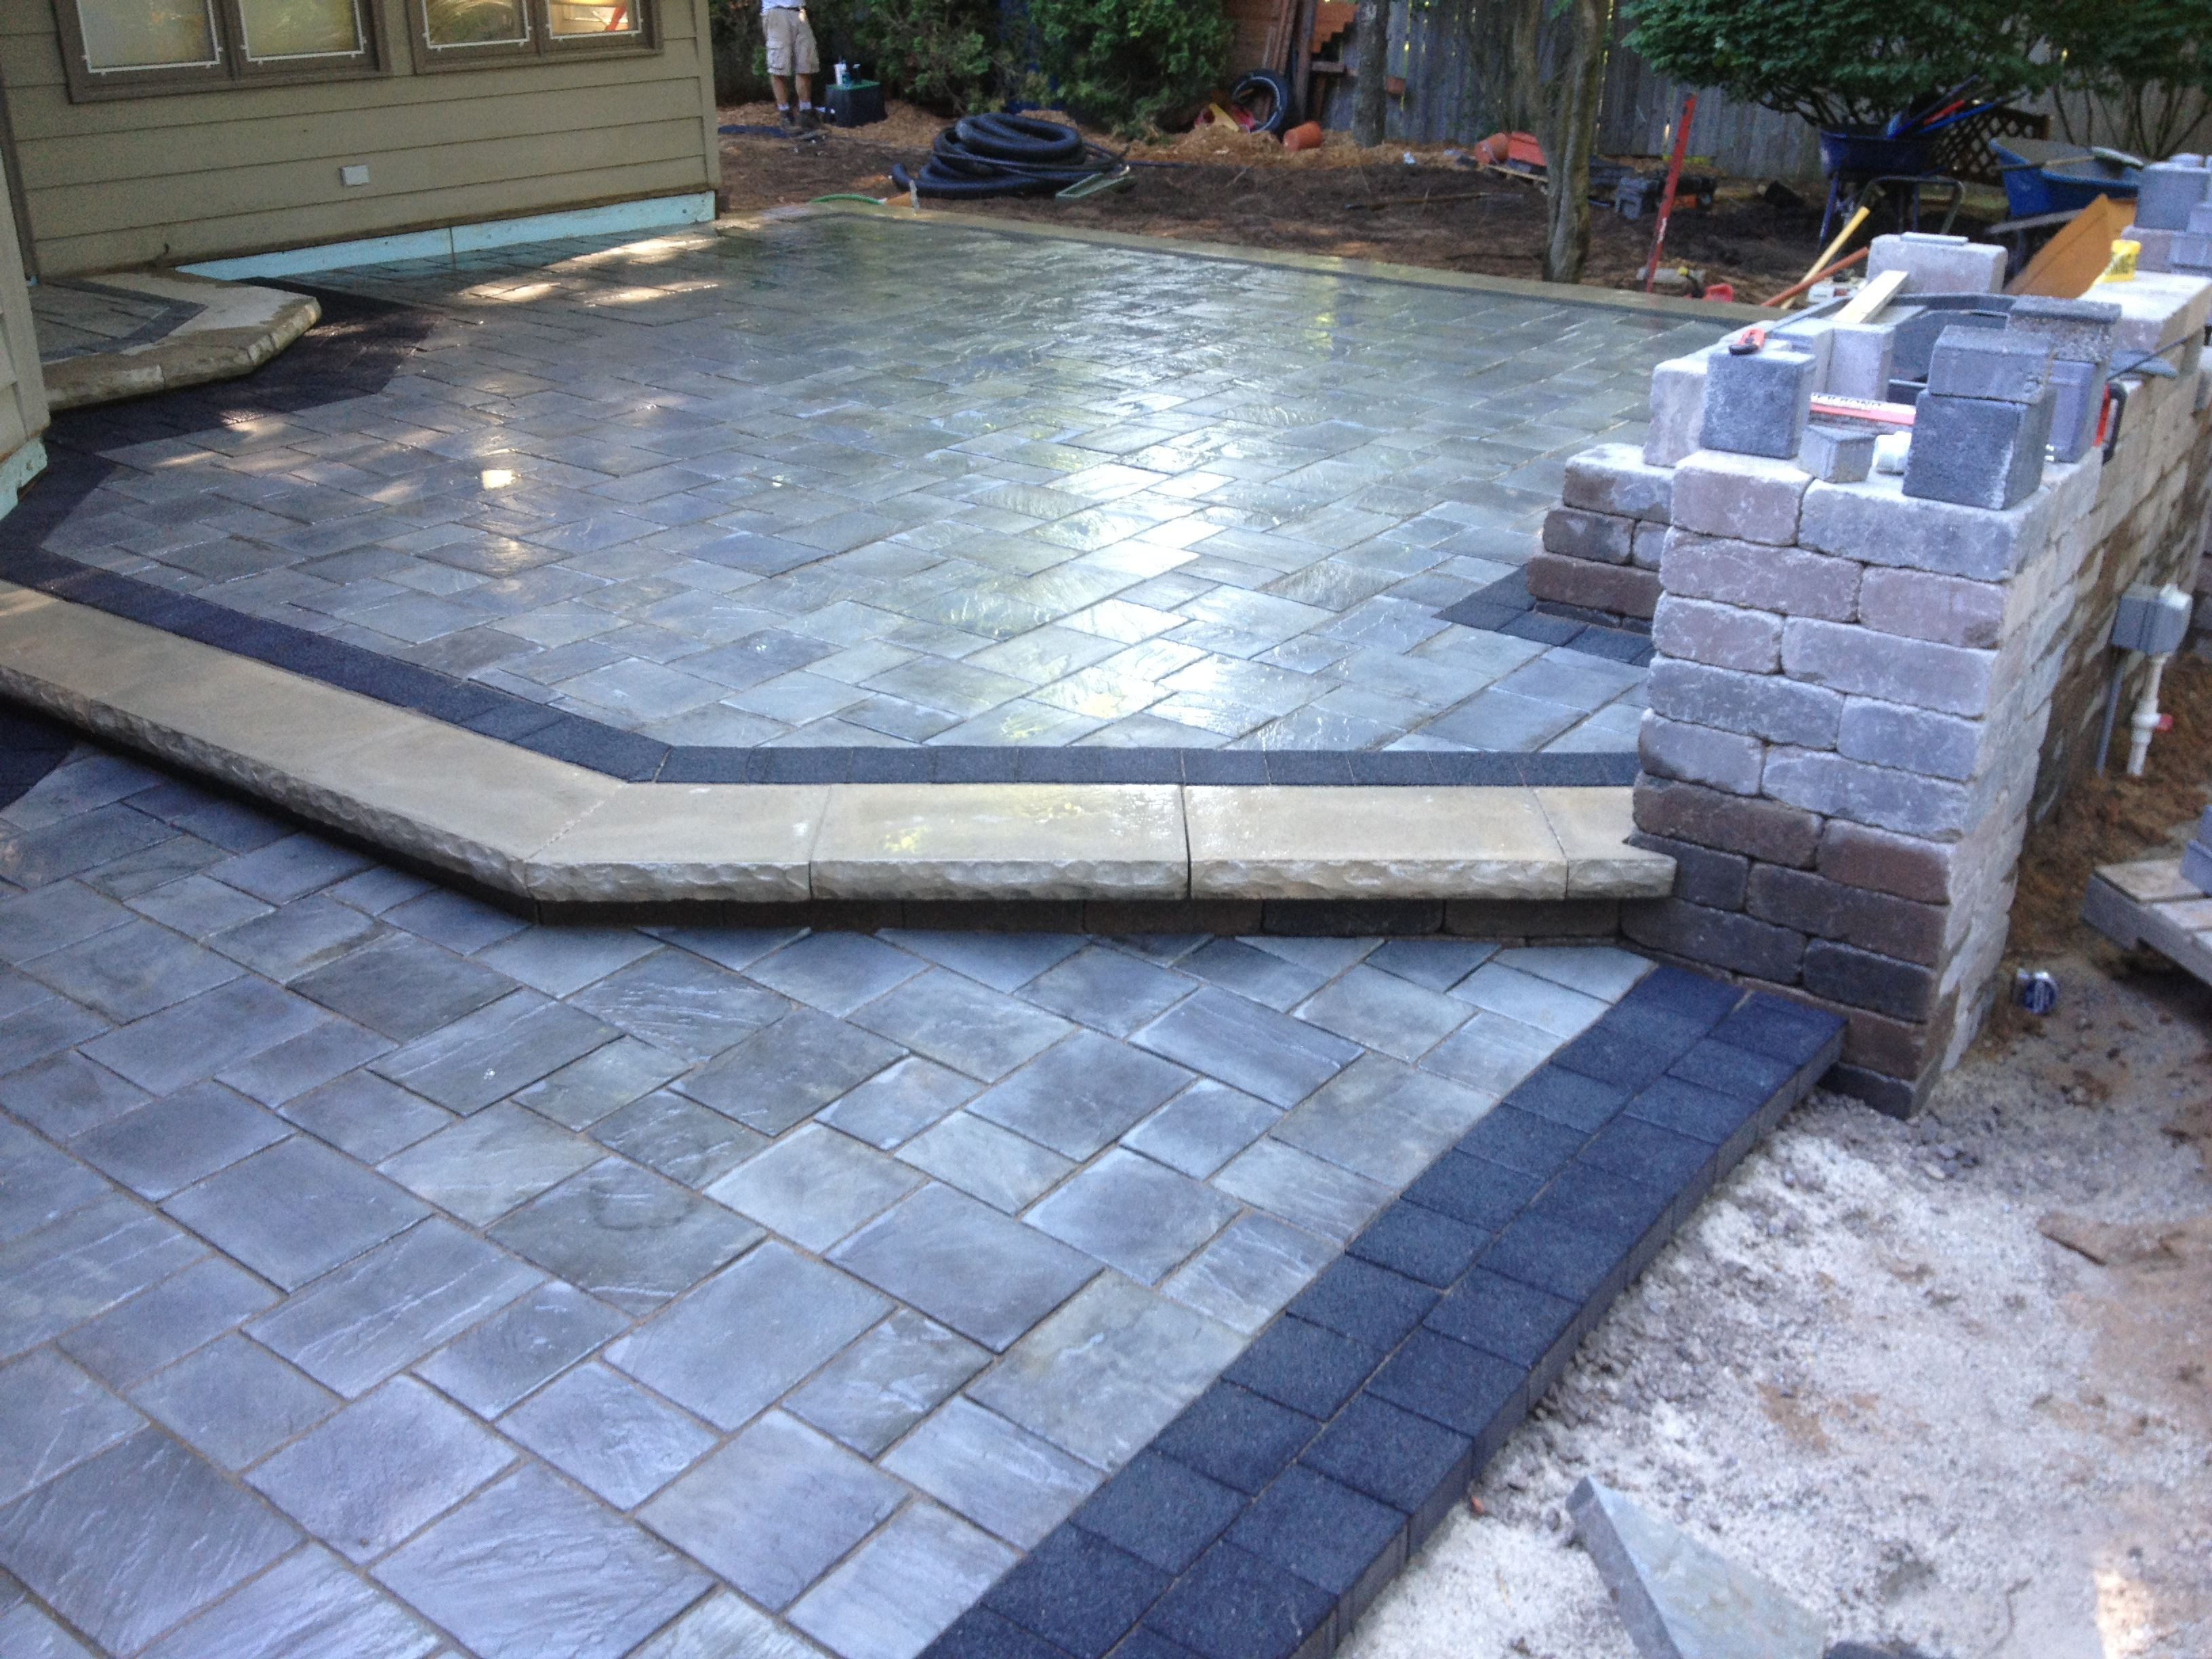 co a patios dischullo patio pcok paver pavers